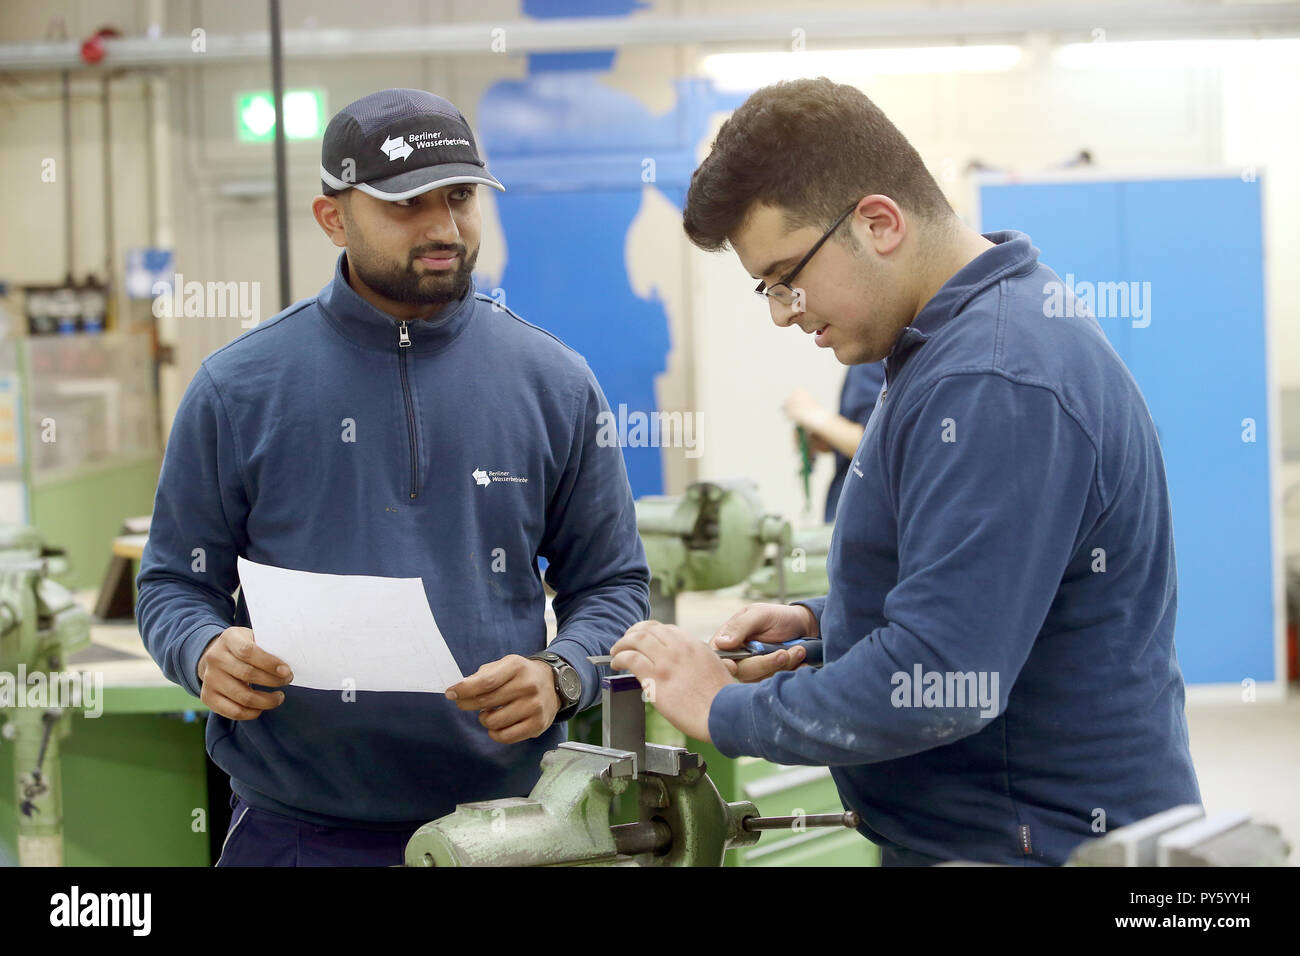 Berlin, Germany. 26th Oct, 2018. At the beginning of a press conference on the campaign 'Training: A question of attitude' at the training facility of Berliner Wasserwerke, trainees converse. The campaign aims to recruit more trainees with a migration history. Credit: Wolfgang Kumm/dpa/Alamy Live News - Stock Image